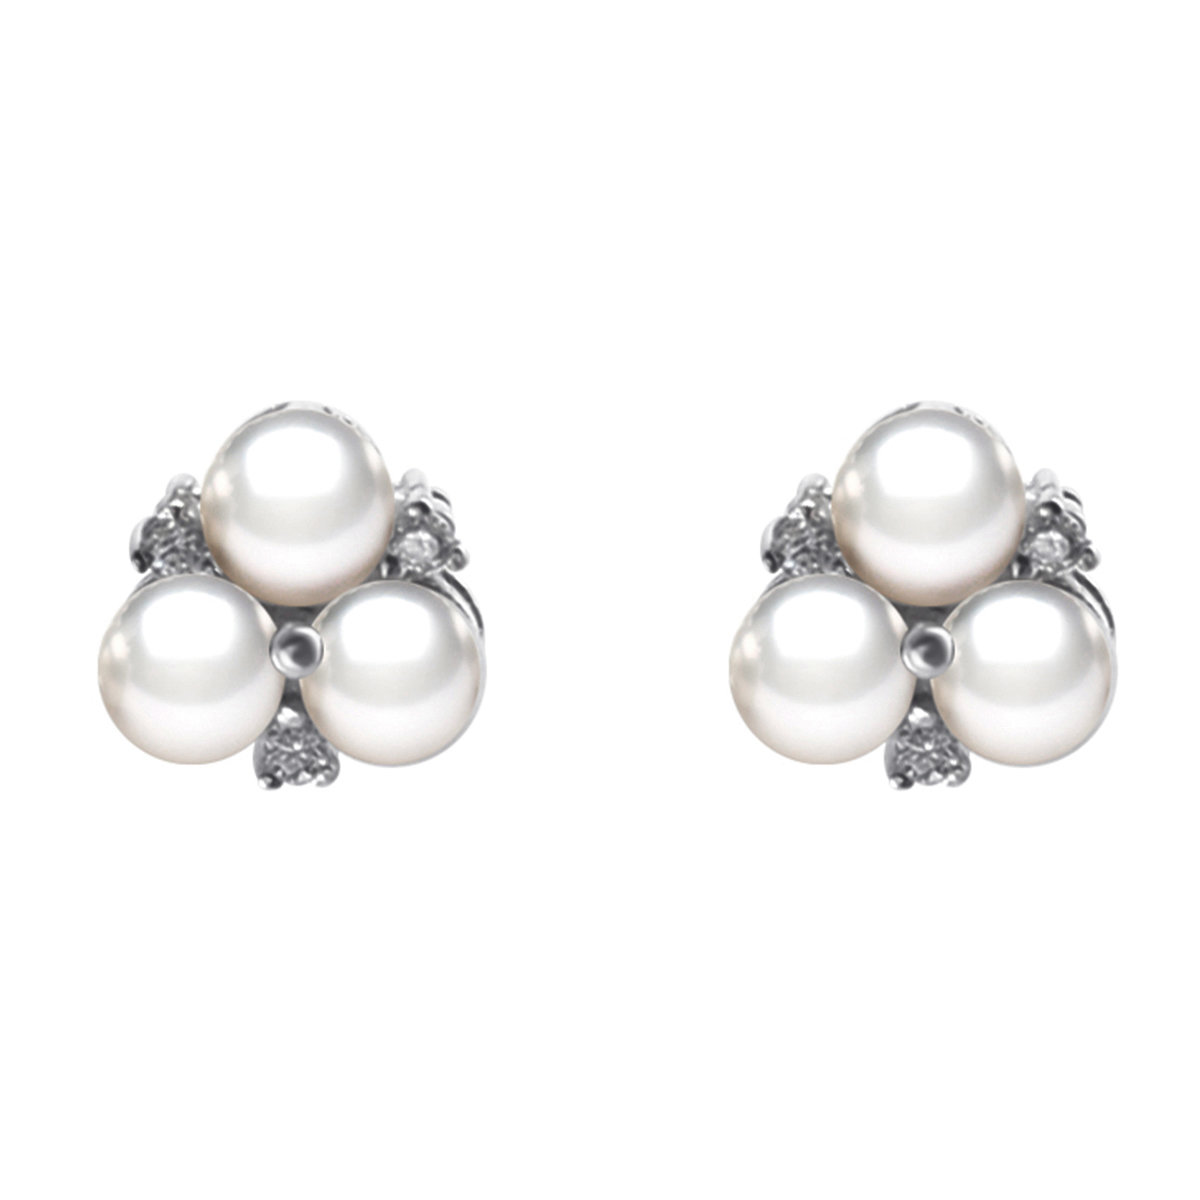 Cotton- Cultured fresh water pearl with cz mounted 925 silver earring